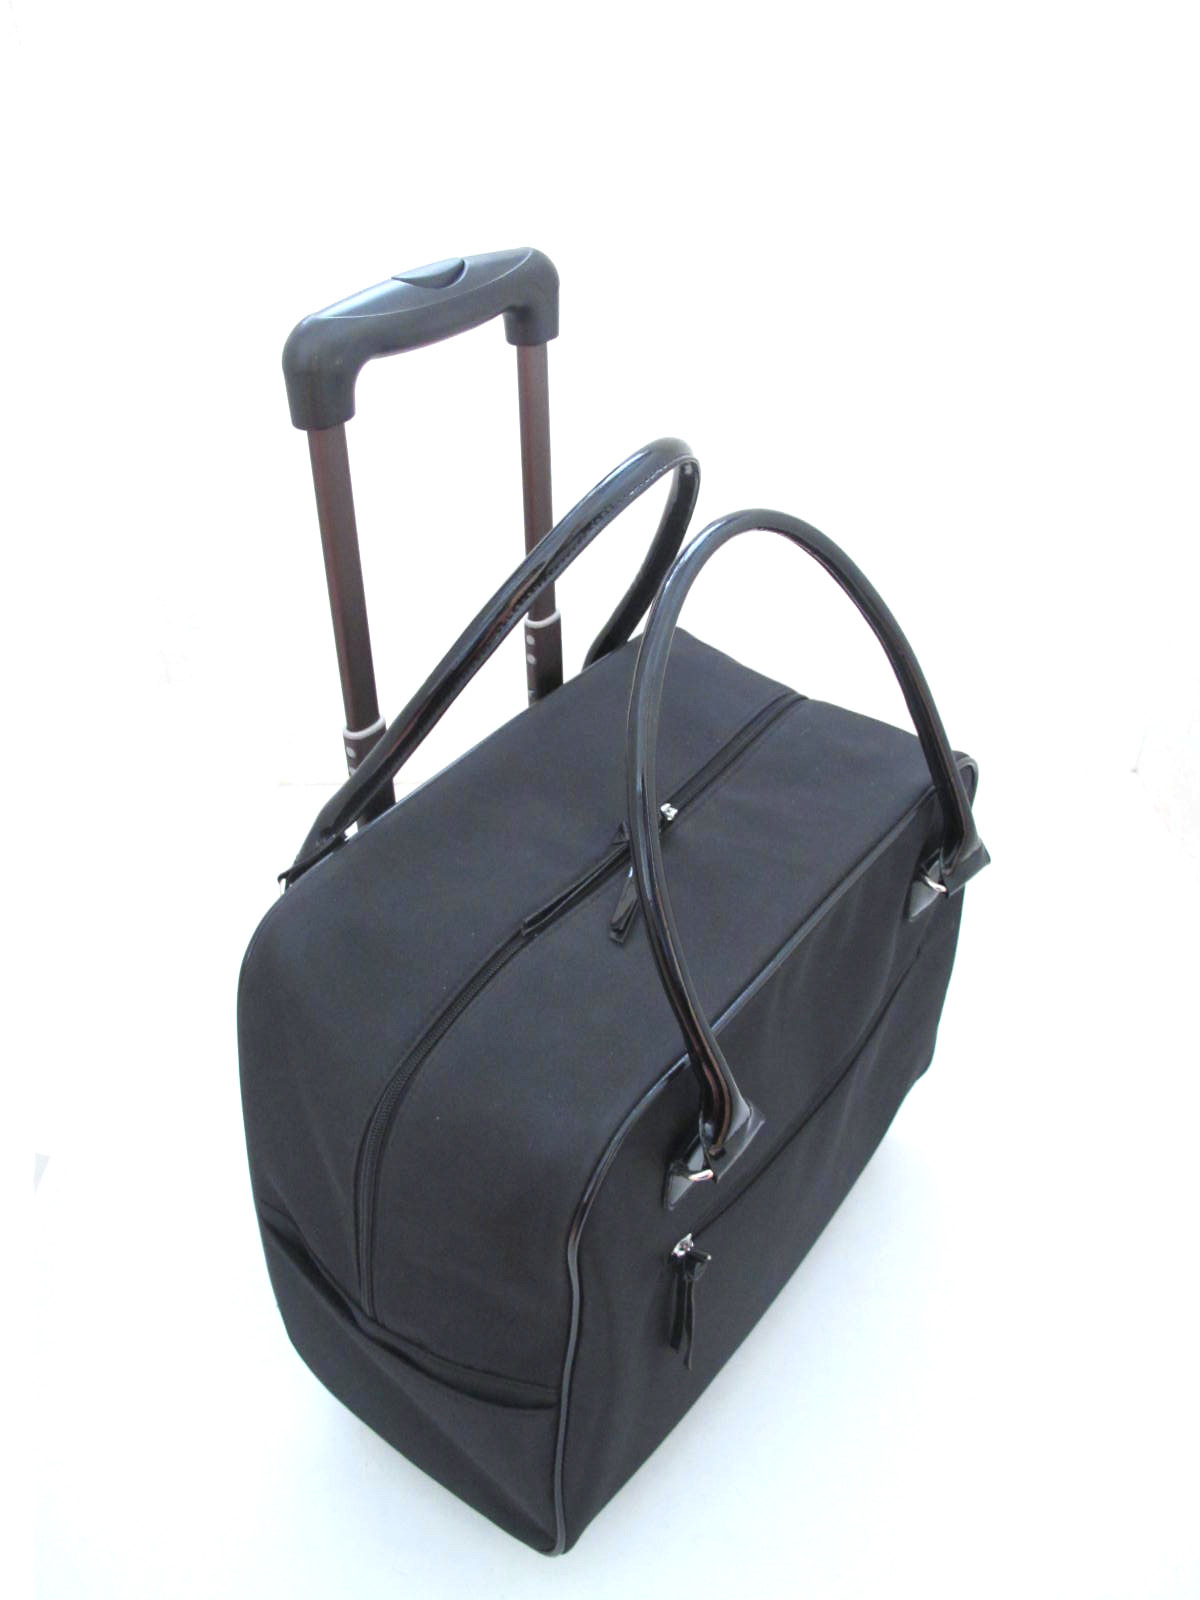 Short Time Travel High Quality Travel Luggage (BDX-161048)